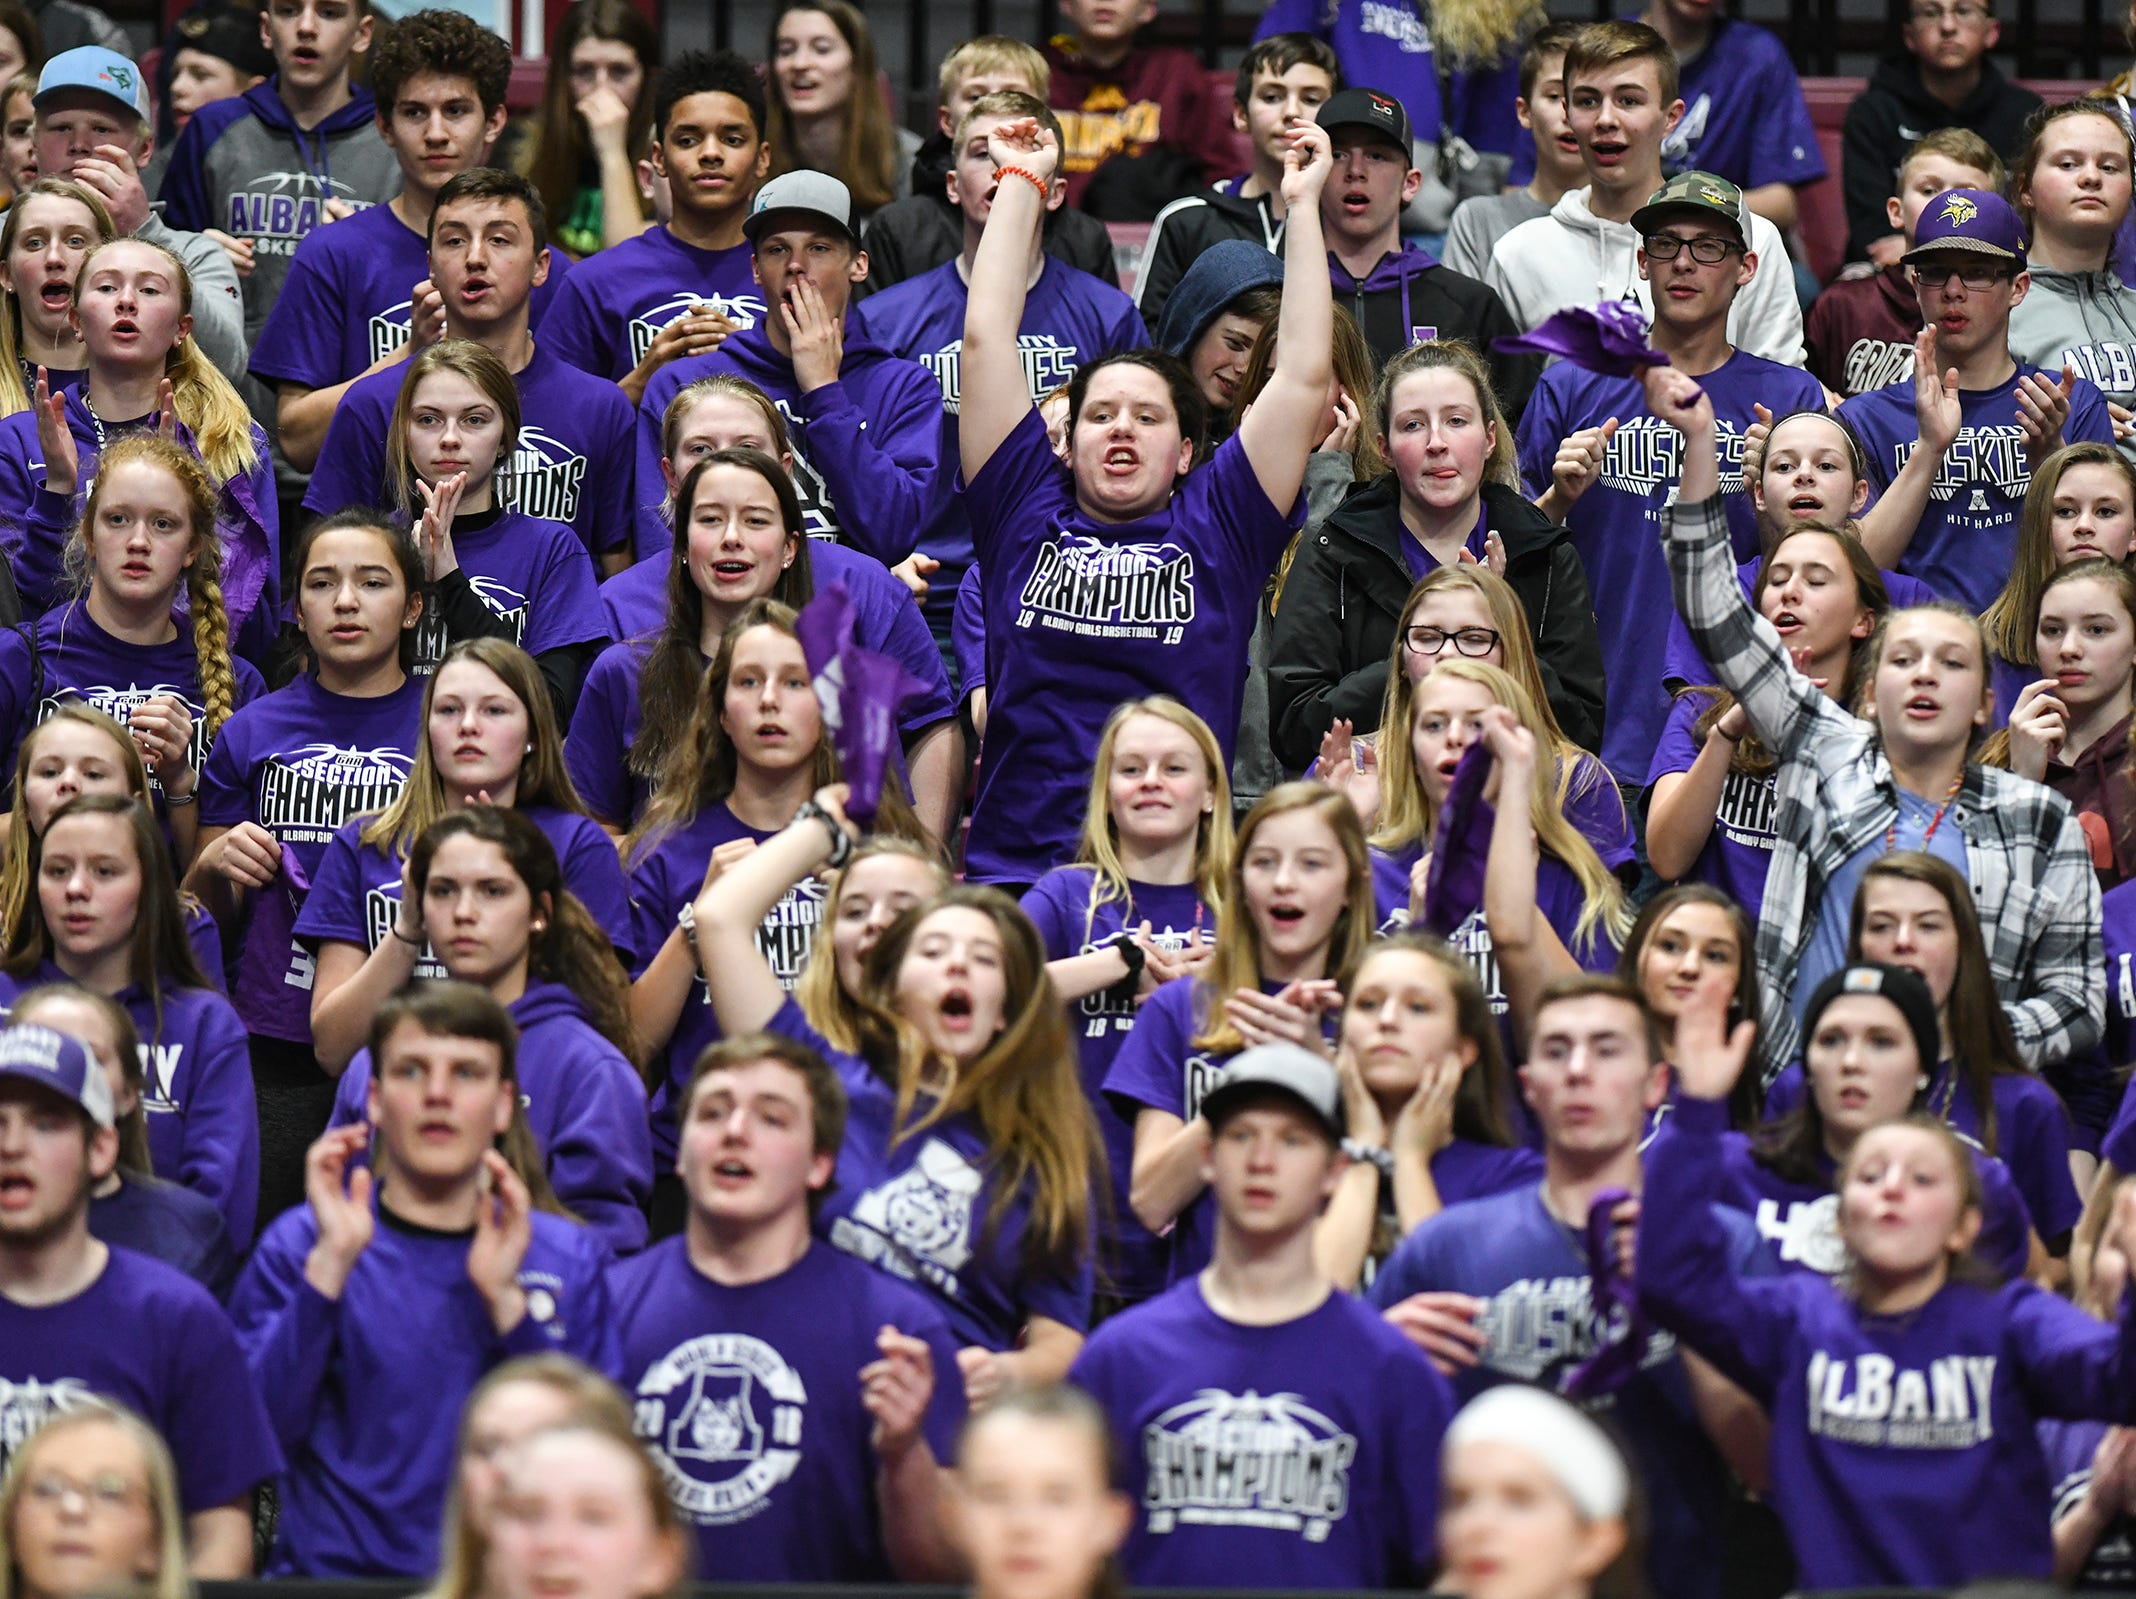 Albany fans cheer for their team during the state Class 2A quarterfinals game Wednesday, March 13, at the University of Minnesota in Minneapolis.